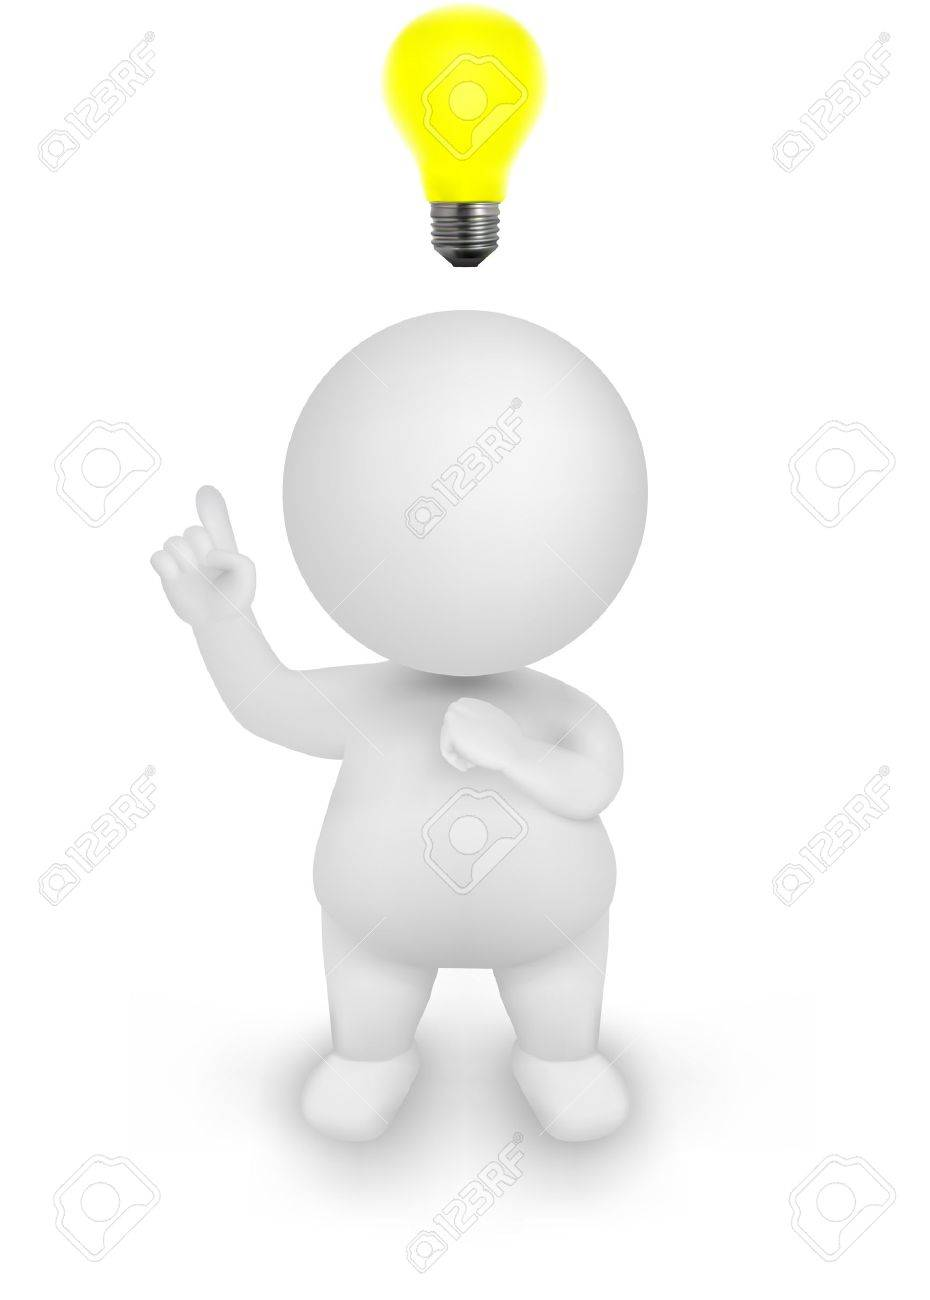 3d Man Illustration having an idea with discover gesture and lightbulb above his head. - 13699568